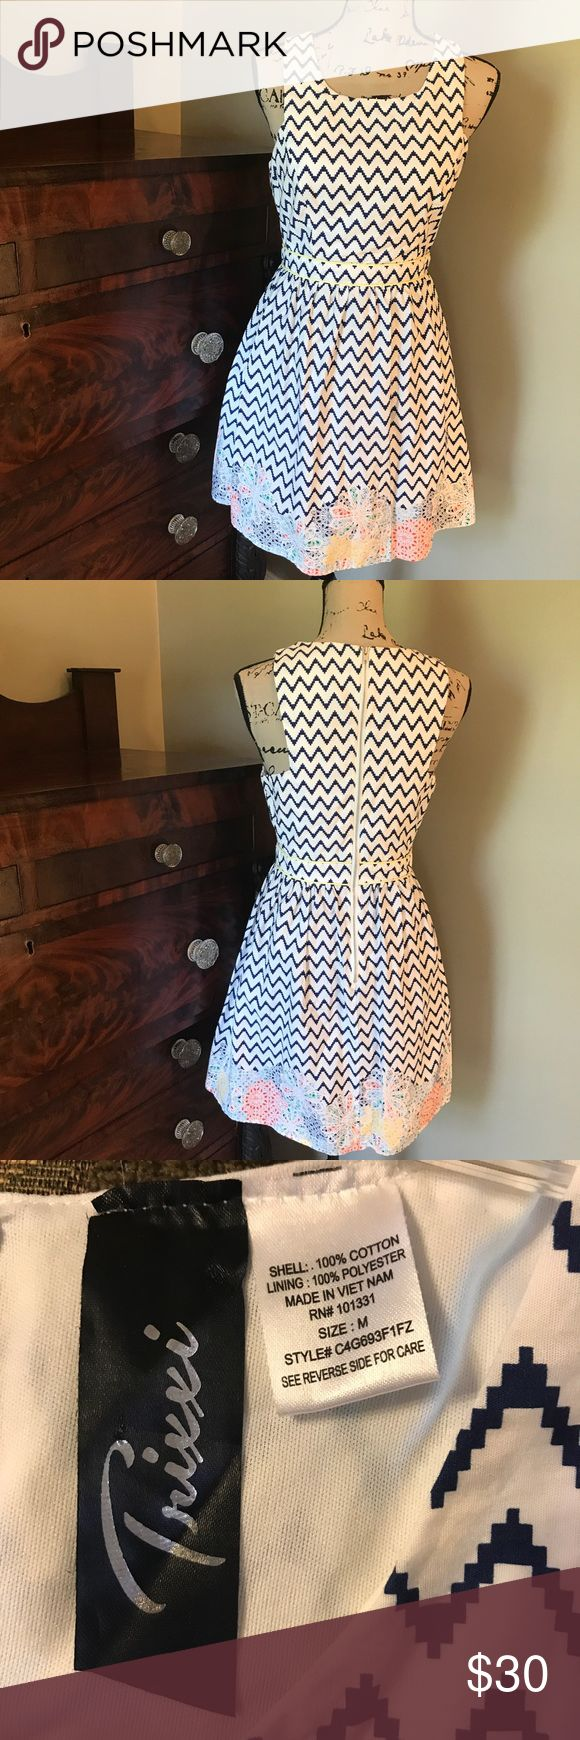 Trixxi Sleeveless White Navy Chevron Dress M This is a super cute dress. Zips in the back. Waistline is very slimming. Whimsical design at the bottom makes the dress. Trixxi Dresses